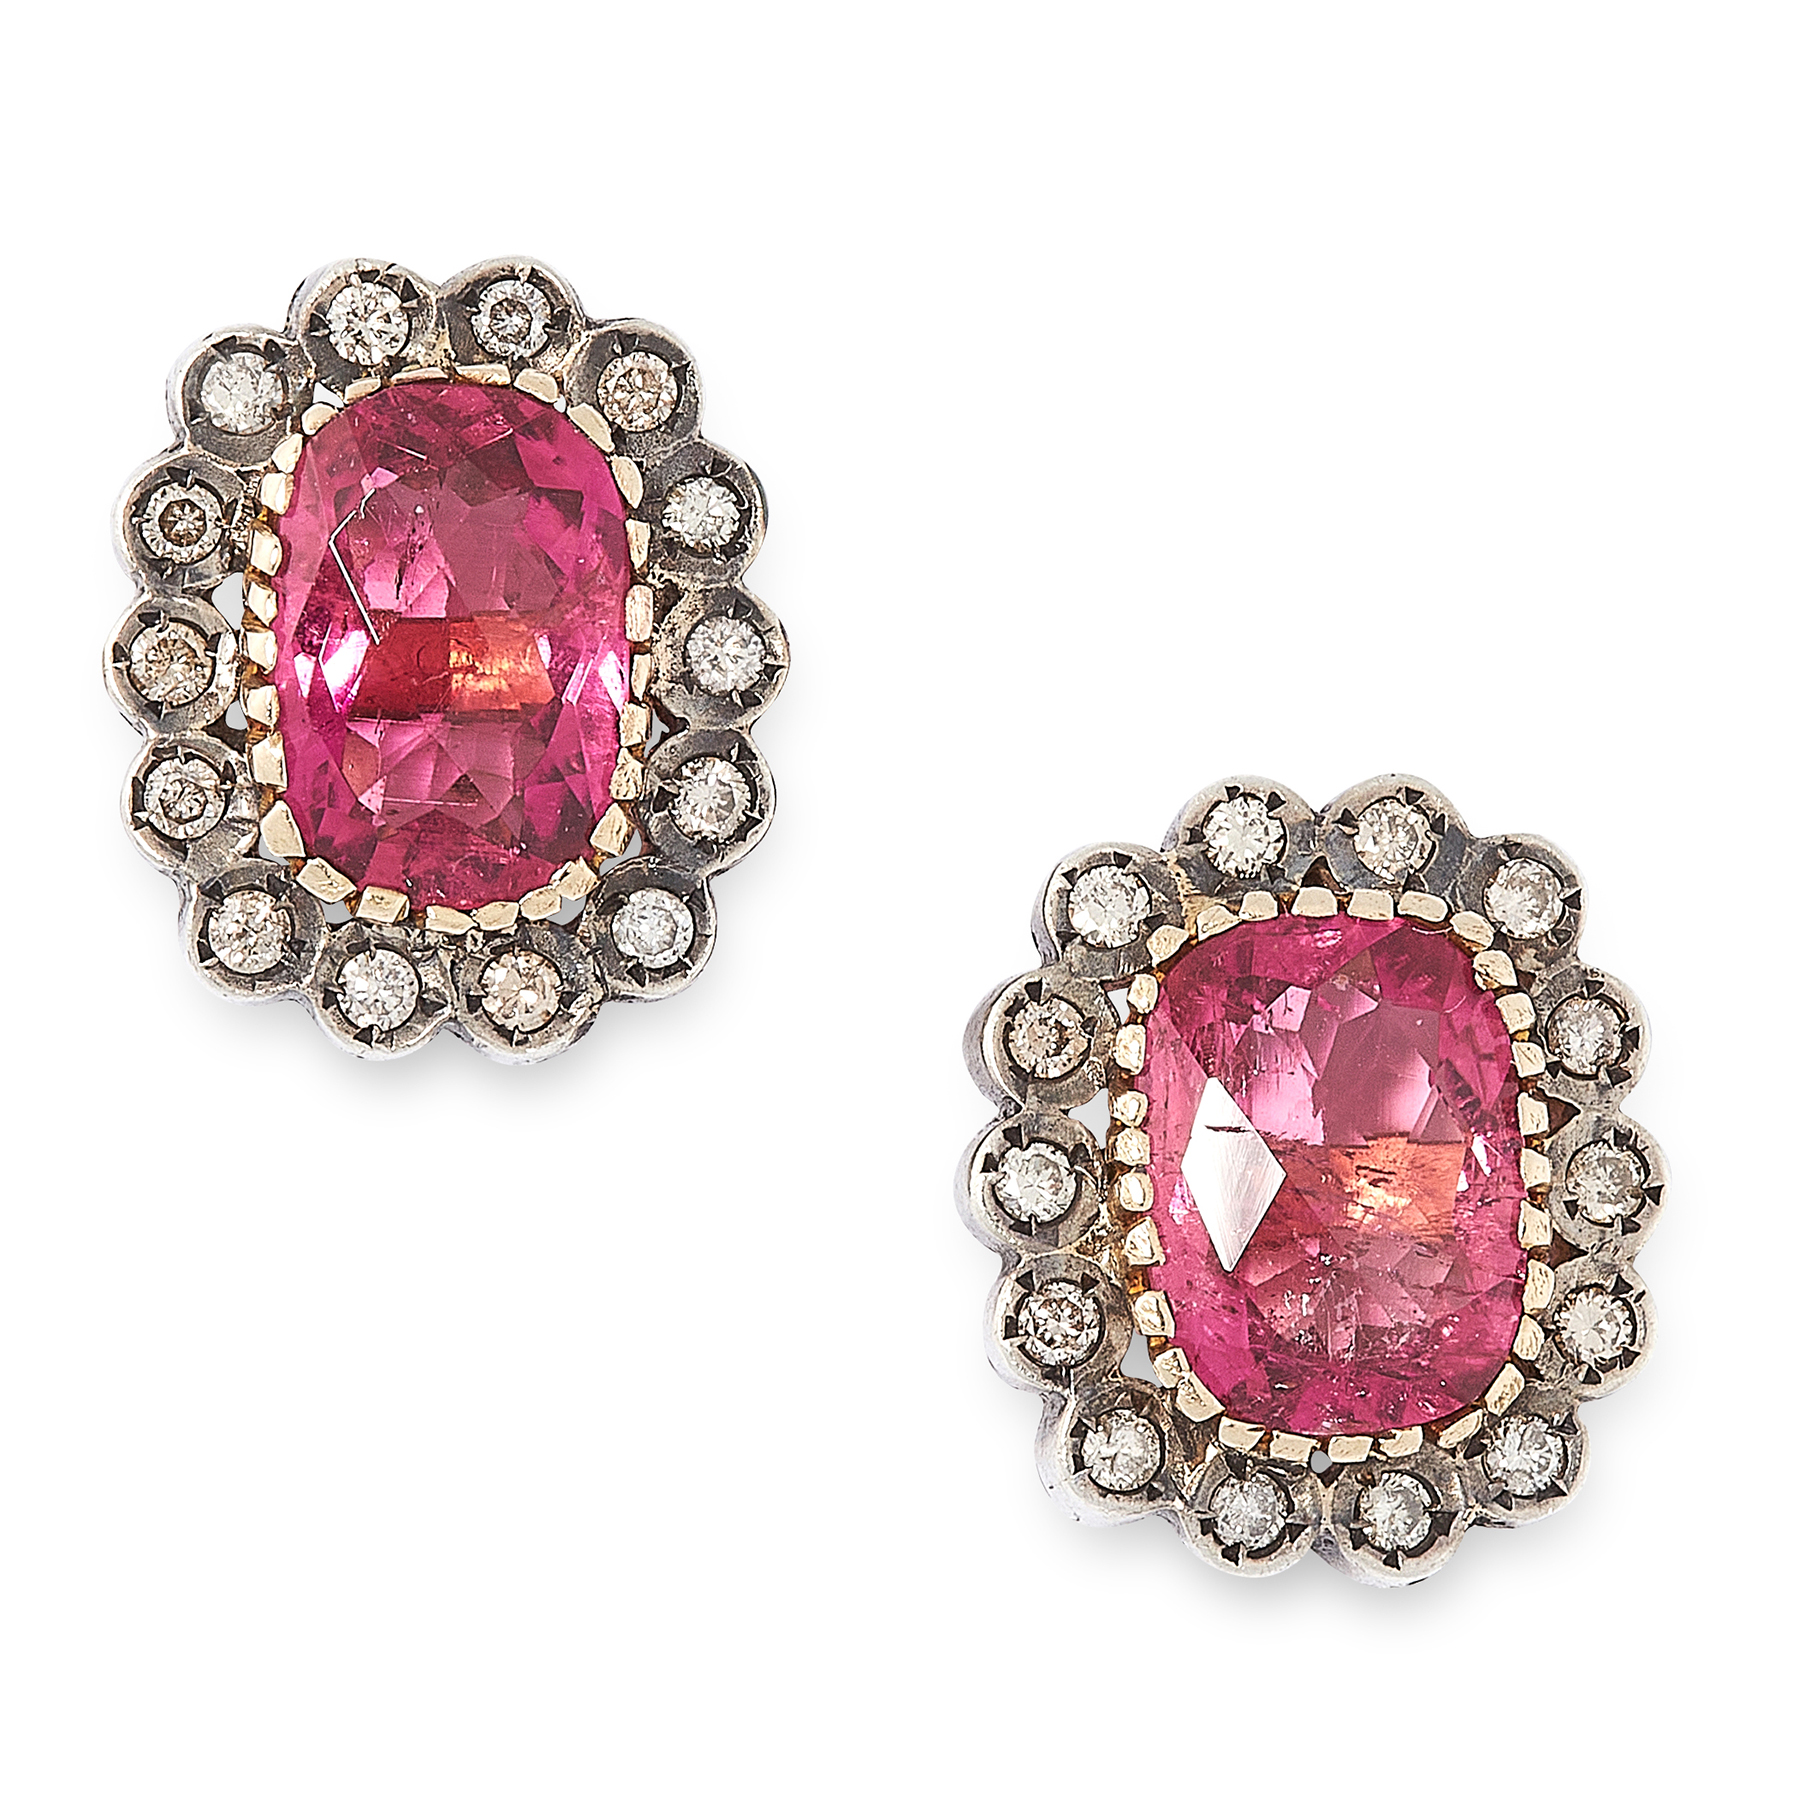 A PAIR OF RUBELLITE TOURMALINE AND DIAMOND STUD EARRINGS in yellow gold and silver, each set with